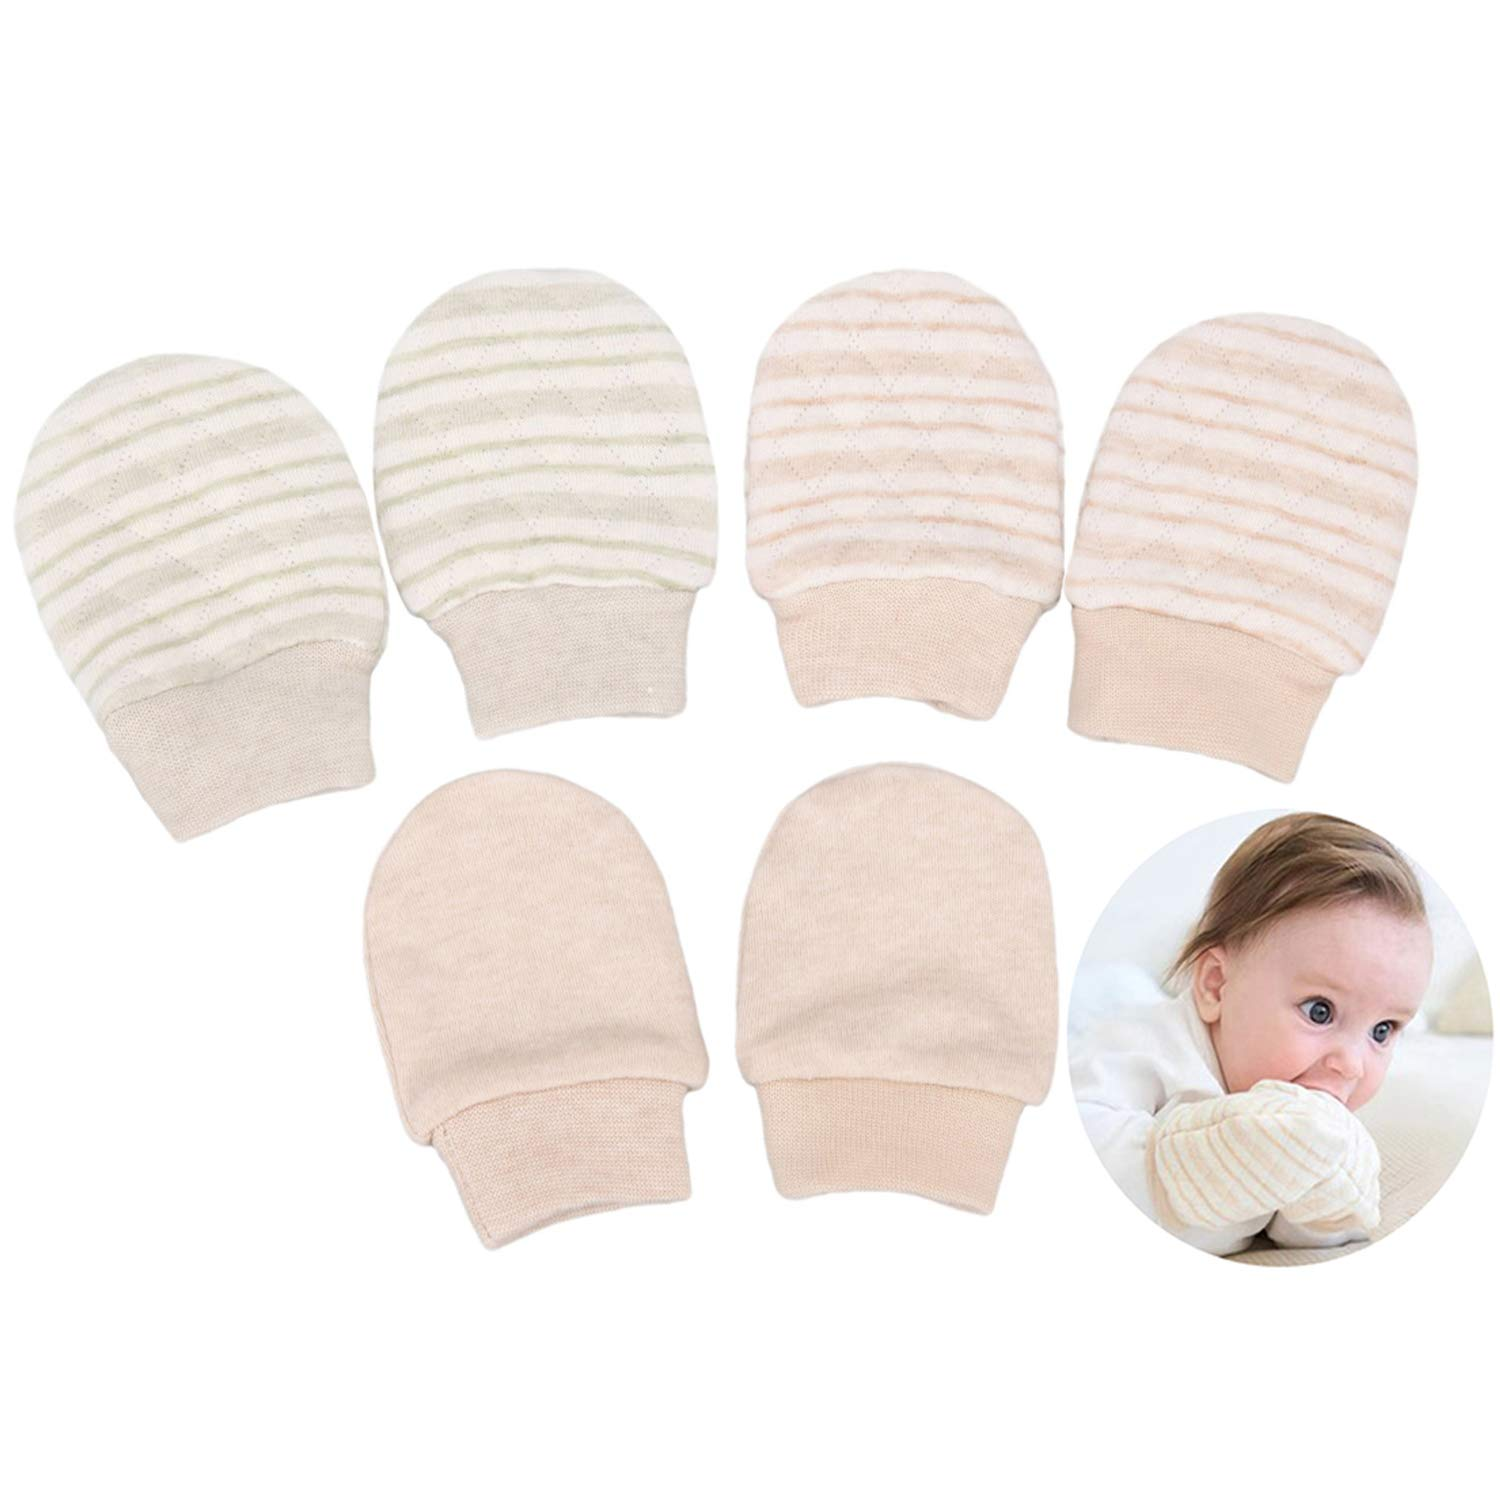 Folamer Newborn Mittens Cotton No Scratch Gloves Socks for 0-6 Months Baby 0-6months Newborn Infant Toddler 100% Cotton No Scratch Mittens shoes More Soft and Thick WRC2-C